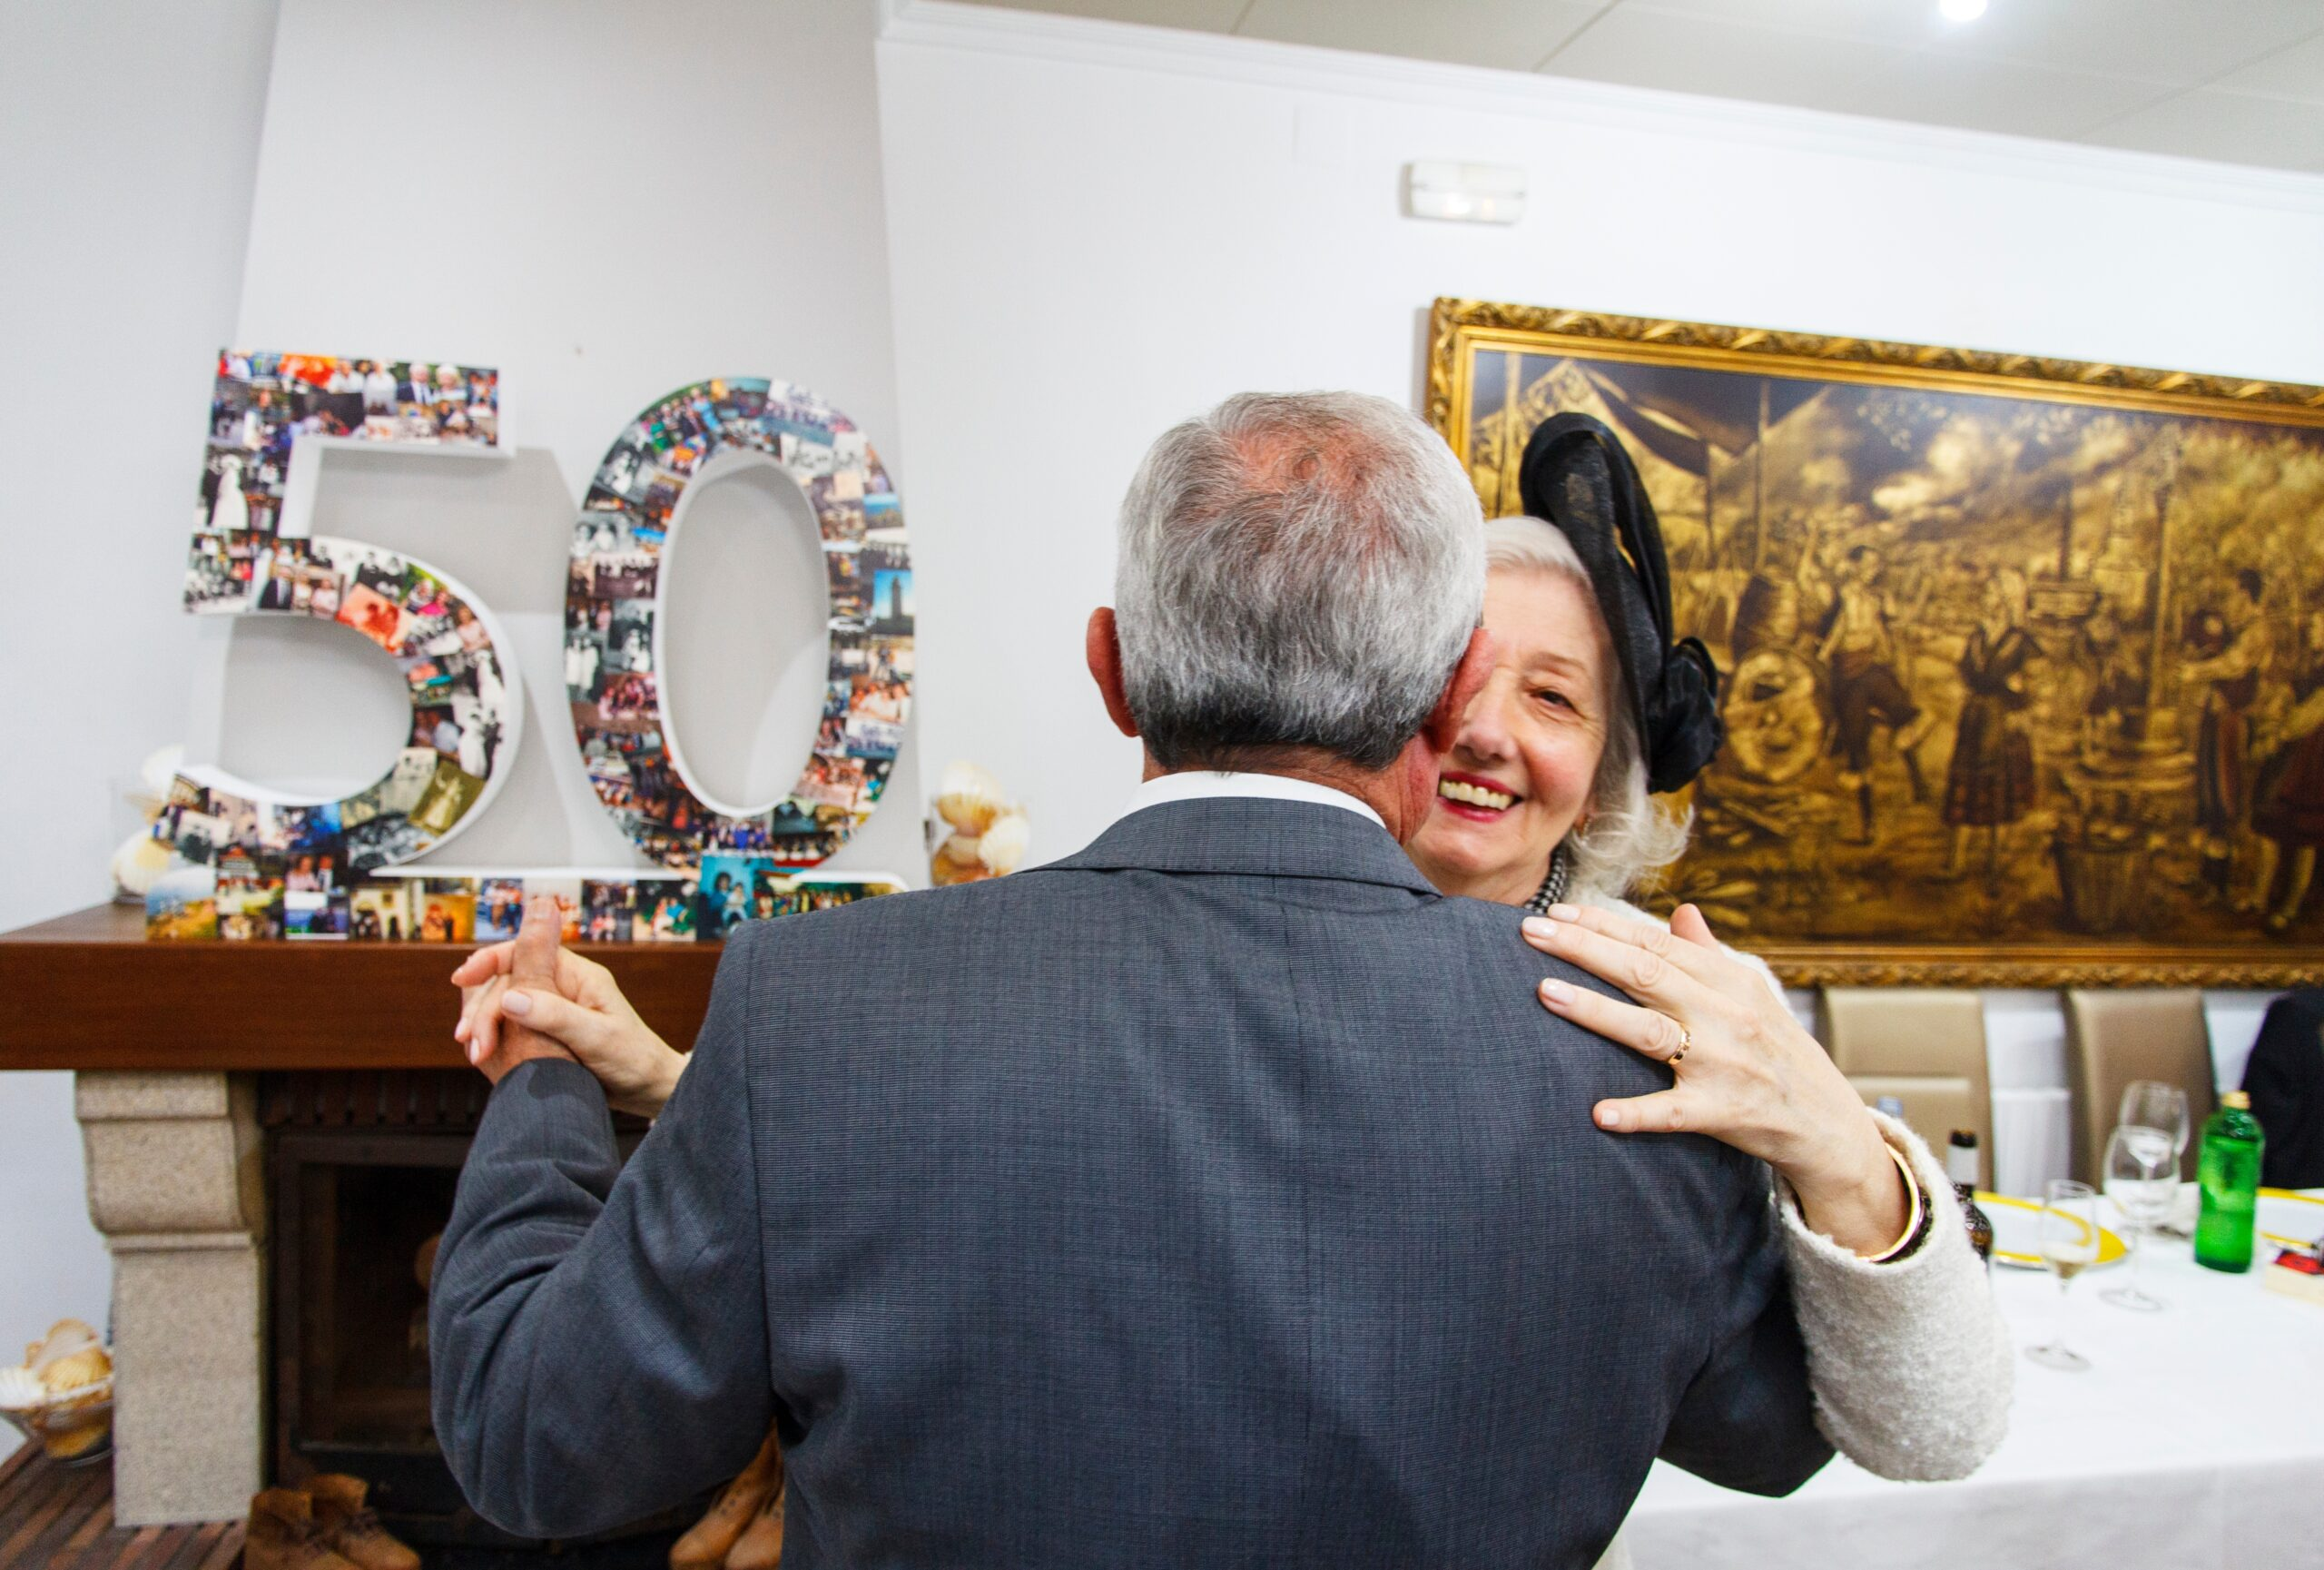 happy-senior-couple-dancing-in-their-50-years-of-m-B5T24UG